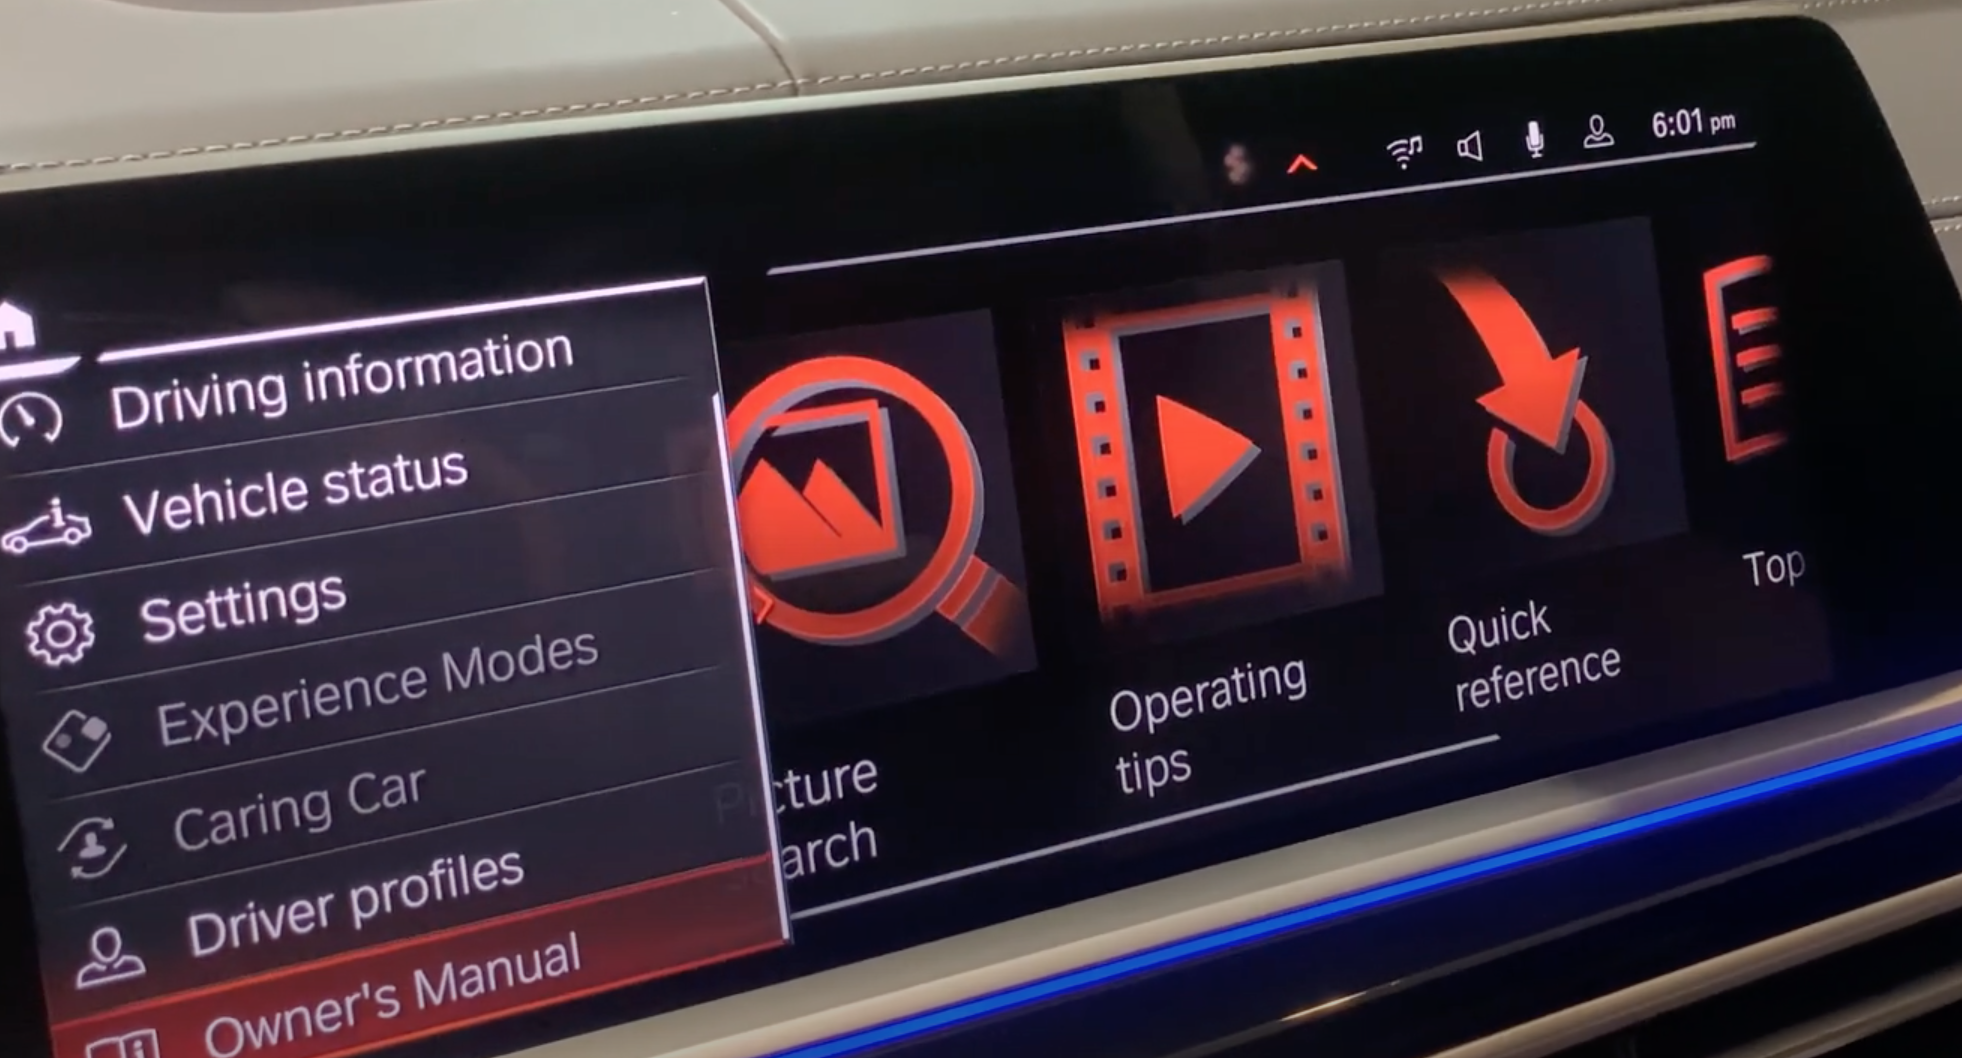 Owner's manual chosen from a list of vehicle information options with icon that represent ech category on the side